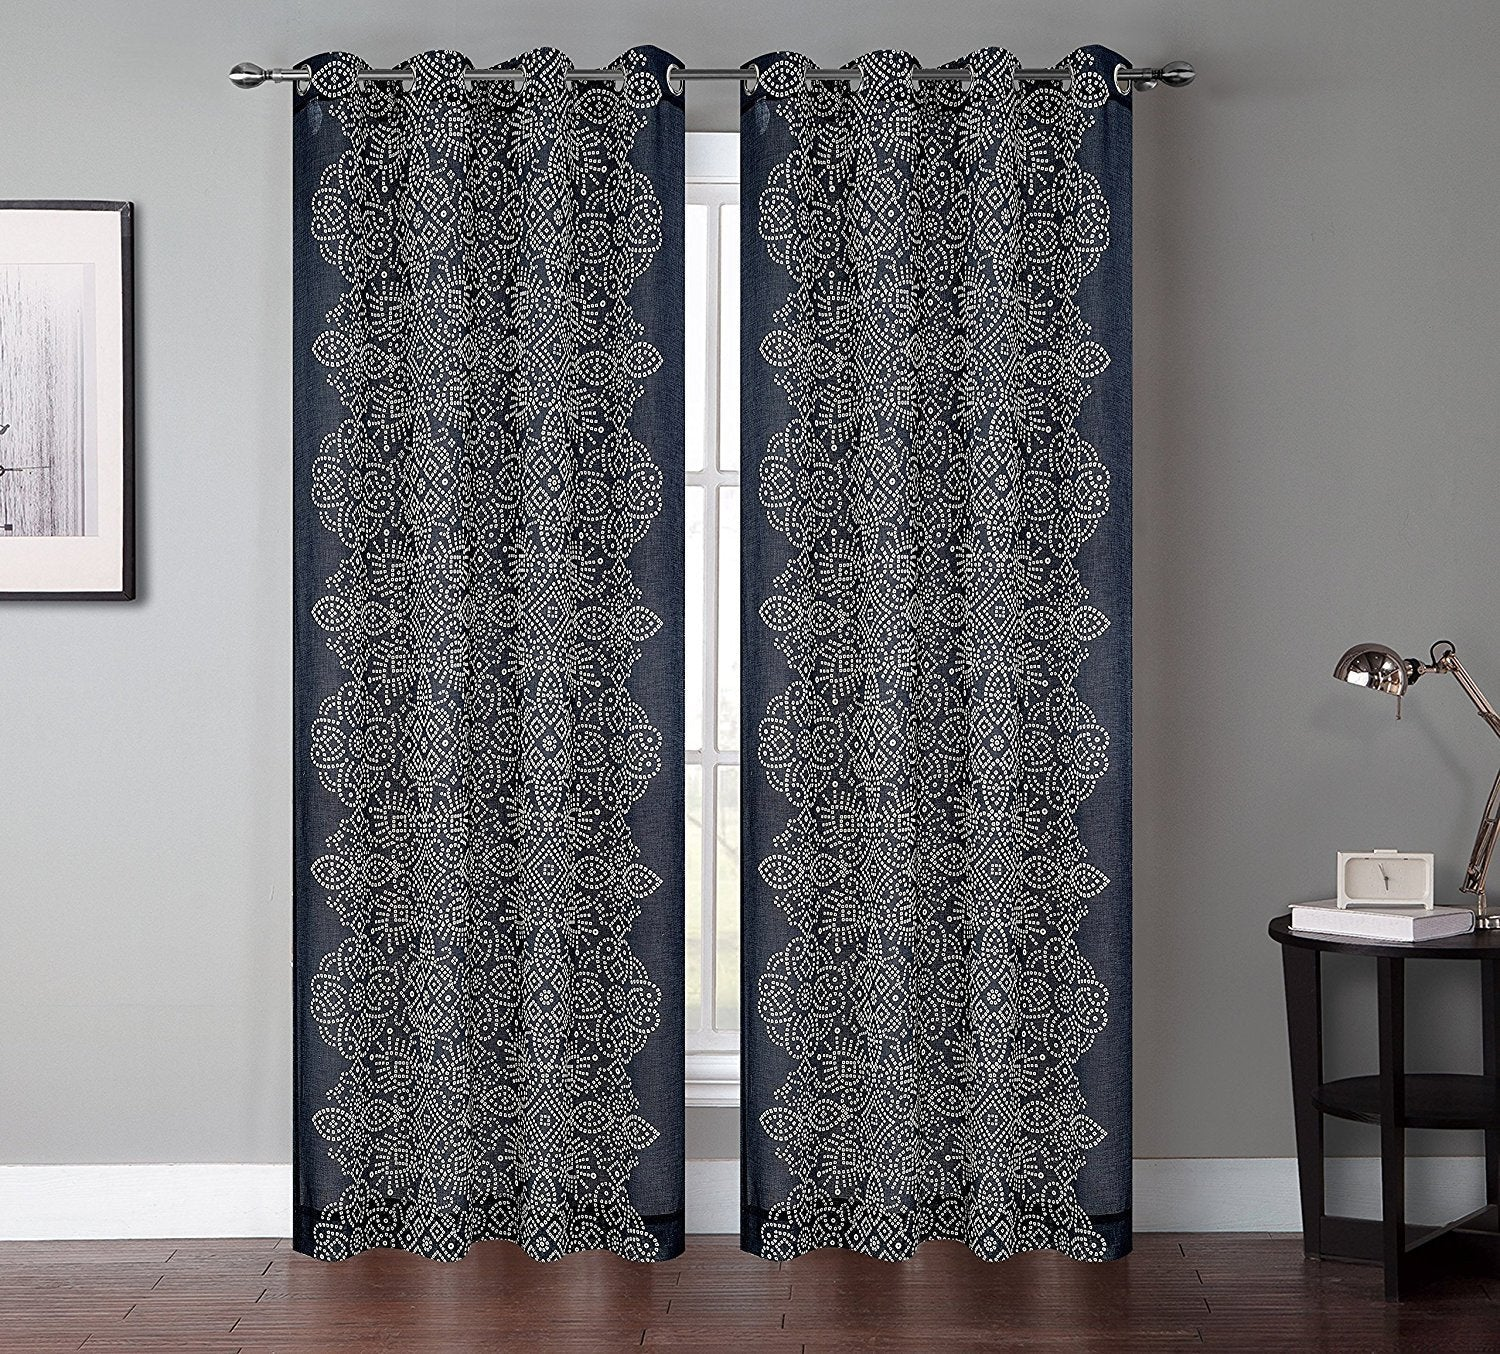 set of 2 bandhini faux linen sheer drapery curtain panels with grommets - Sheer Curtain Panels